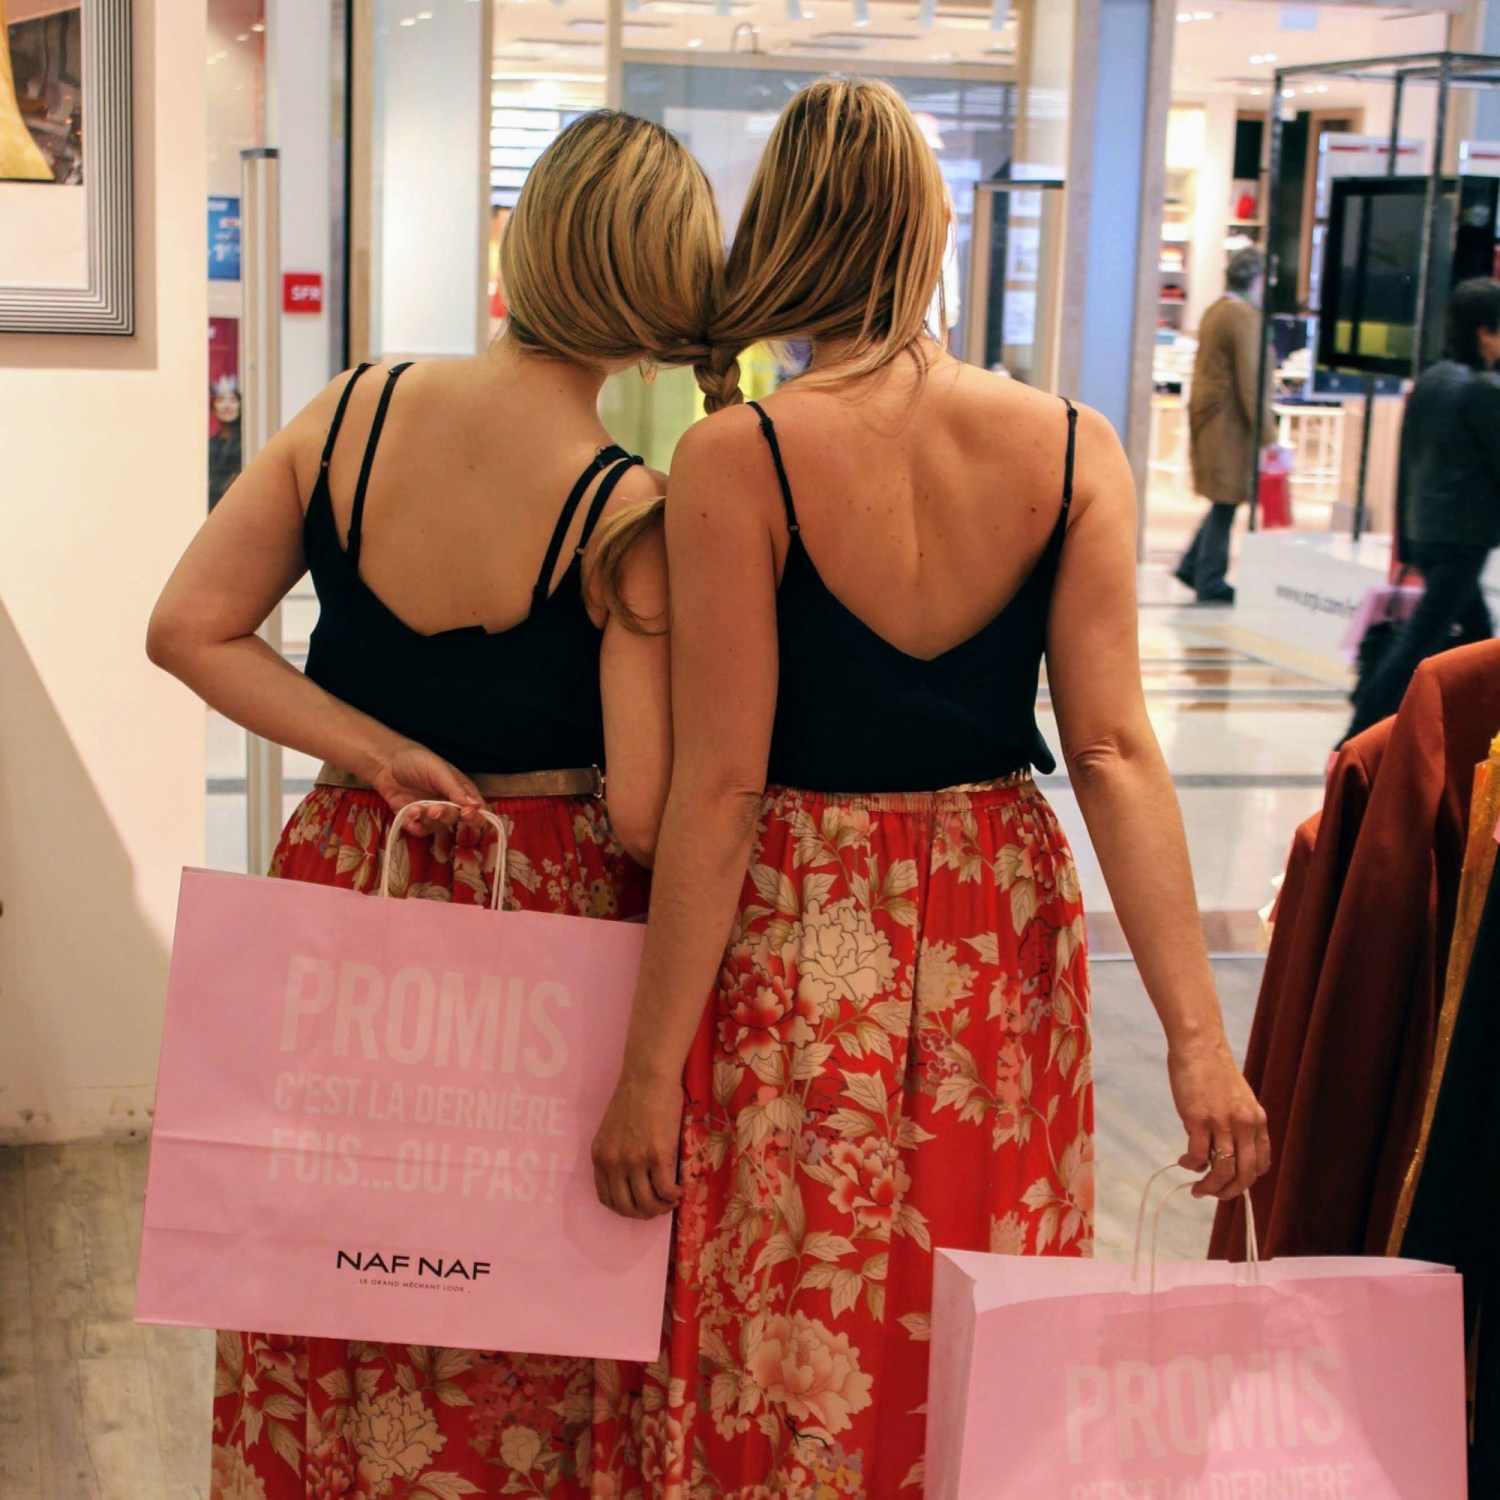 Encore un beau moment entre copines de shopping !